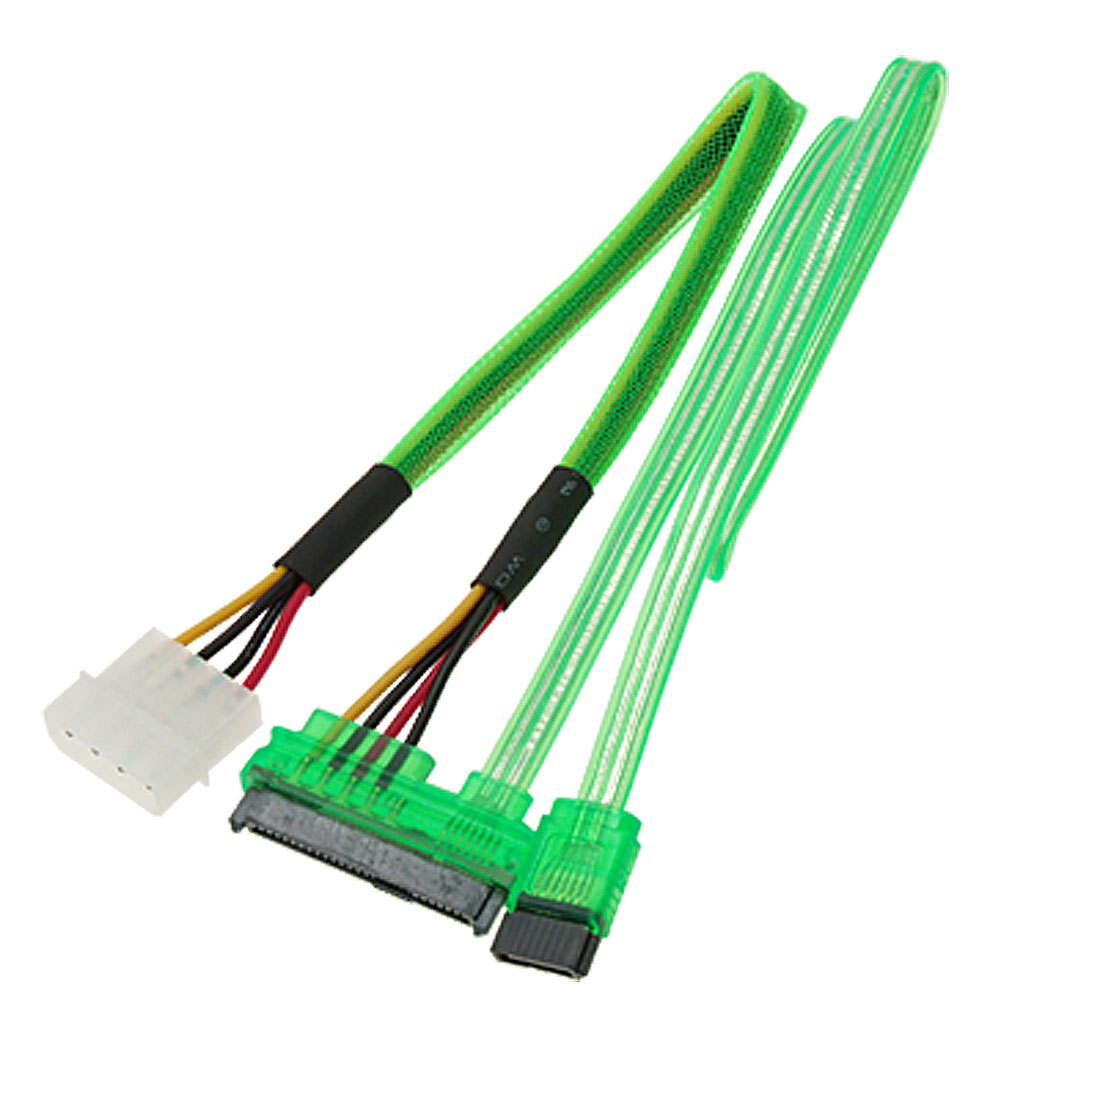 Serial ATA SATA 7+15 Pin to IDE 4 Pin Extension Power Cable